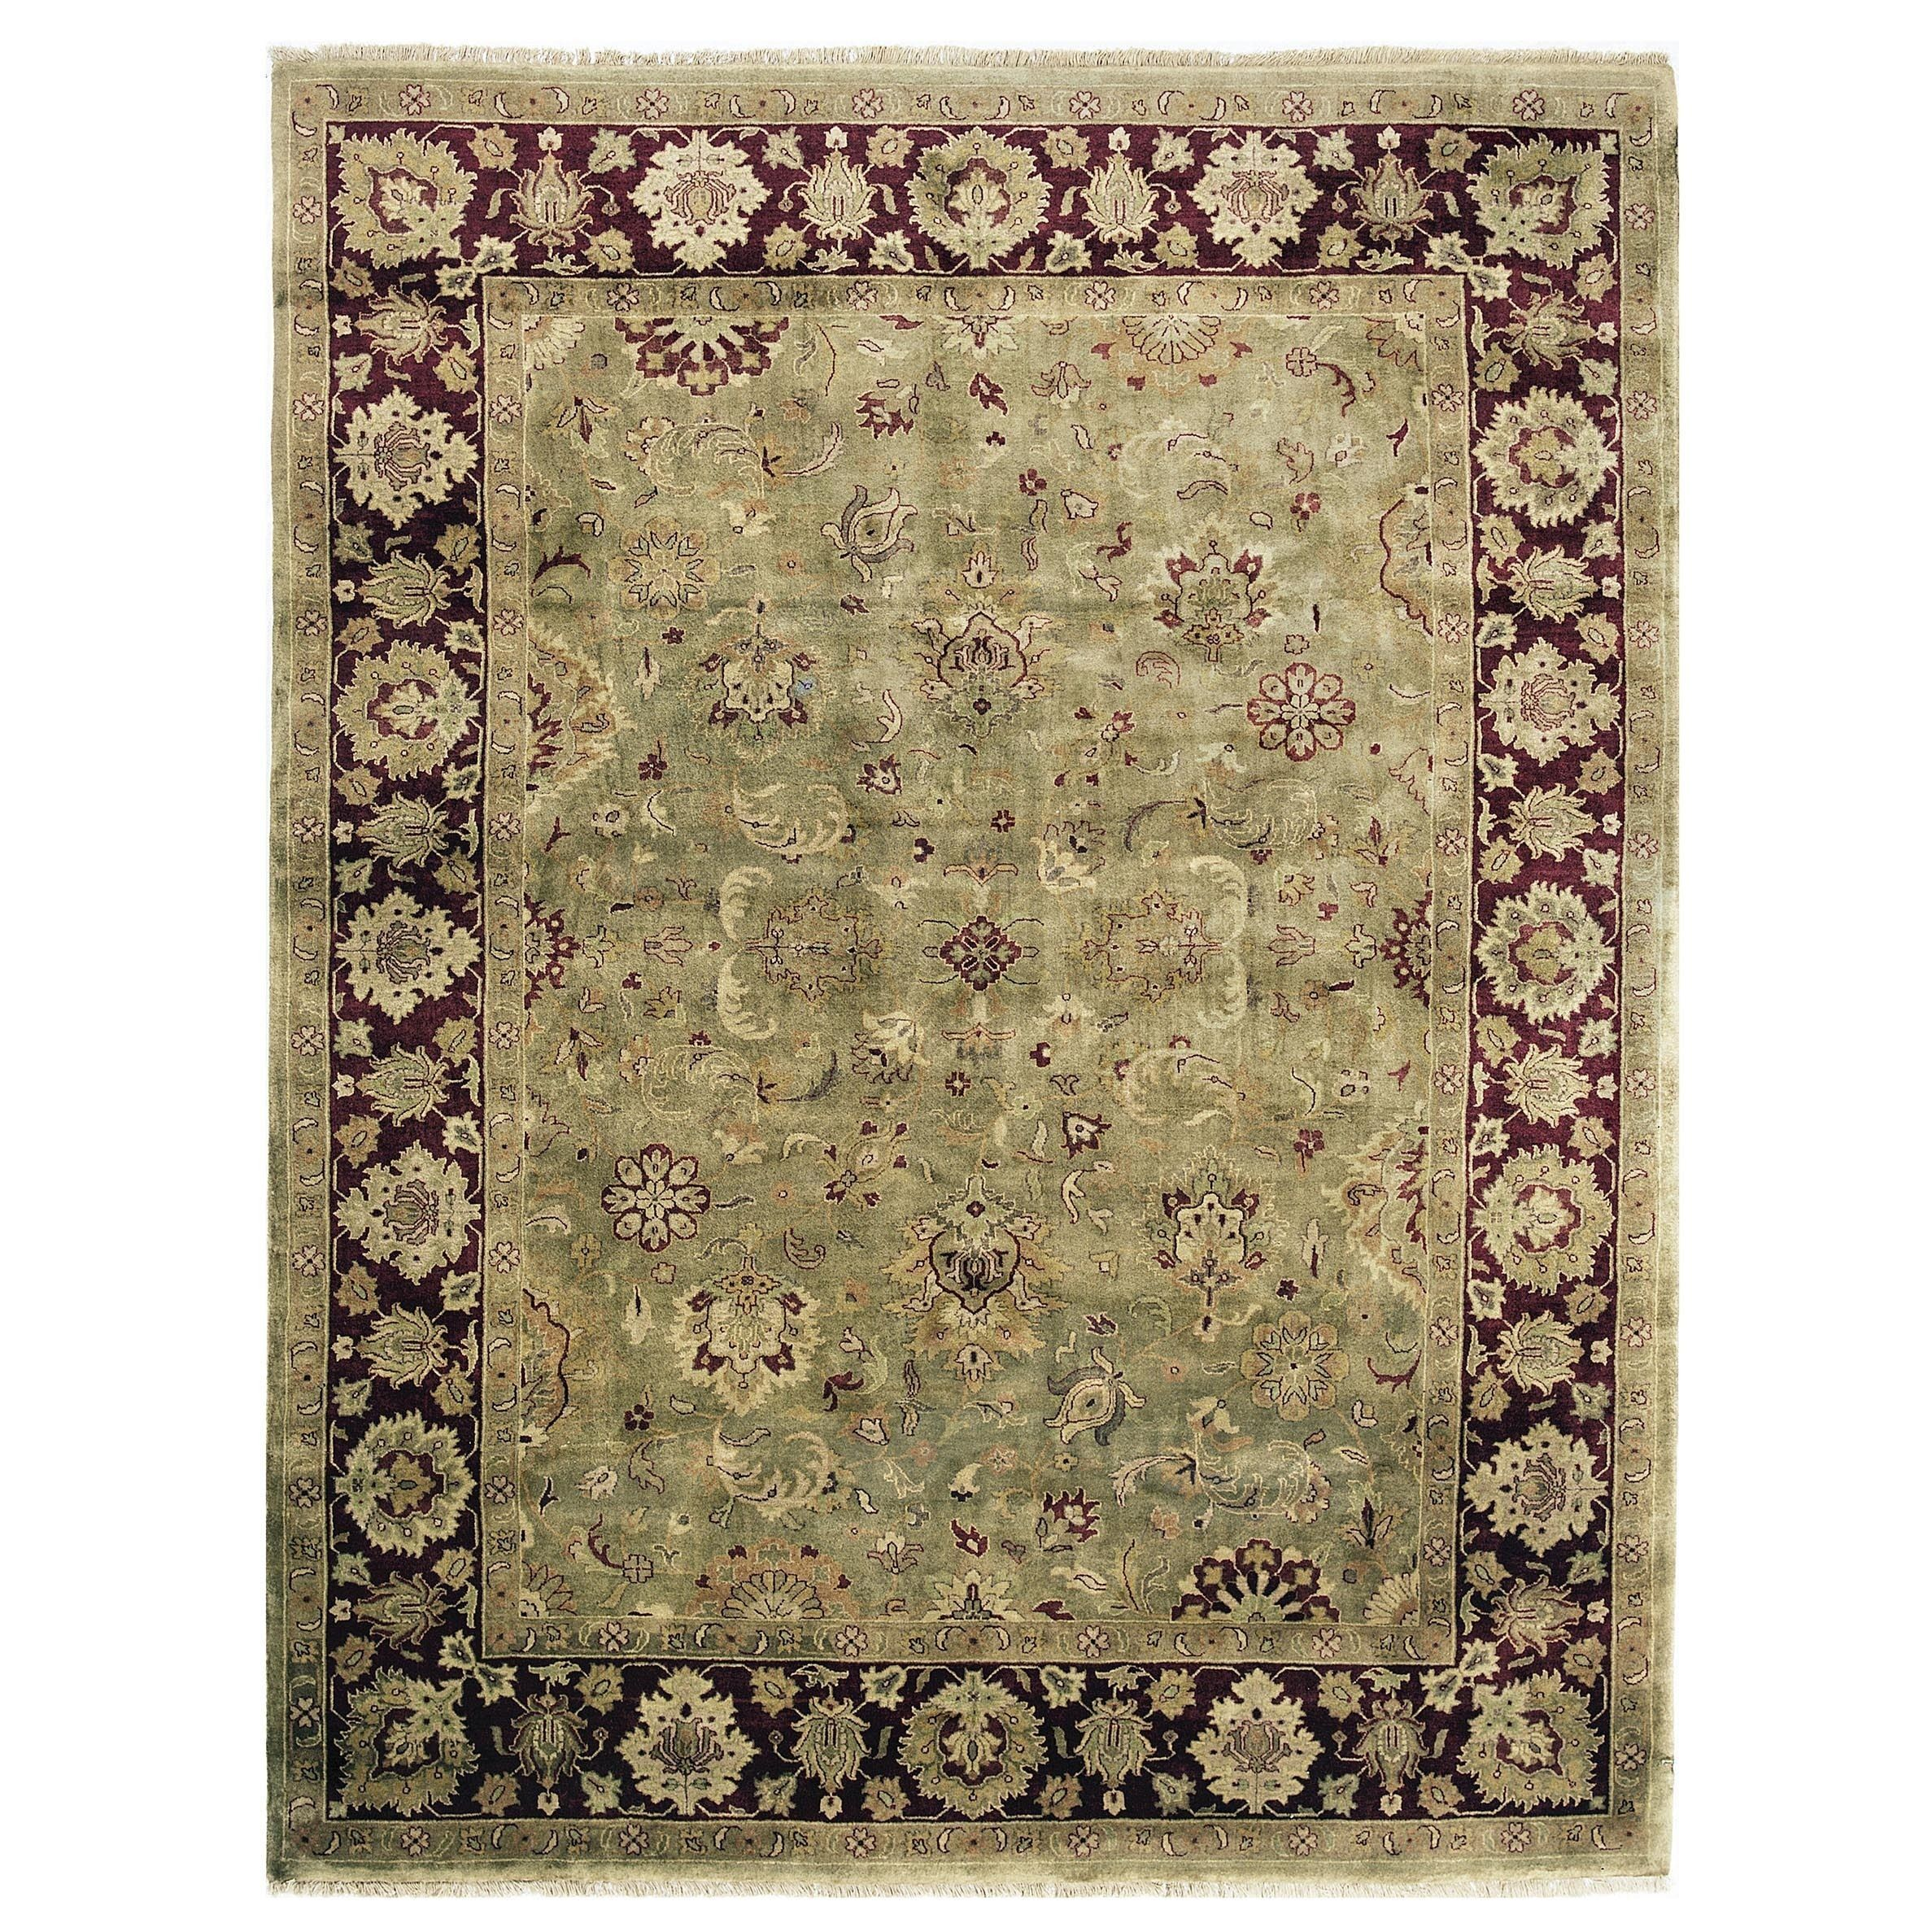 Exquisite Rugs Super Kashan Green Maroon New Zealand Wool Round Rug 10 X 10 Products Rugs Colorful Rugs Area Rugs